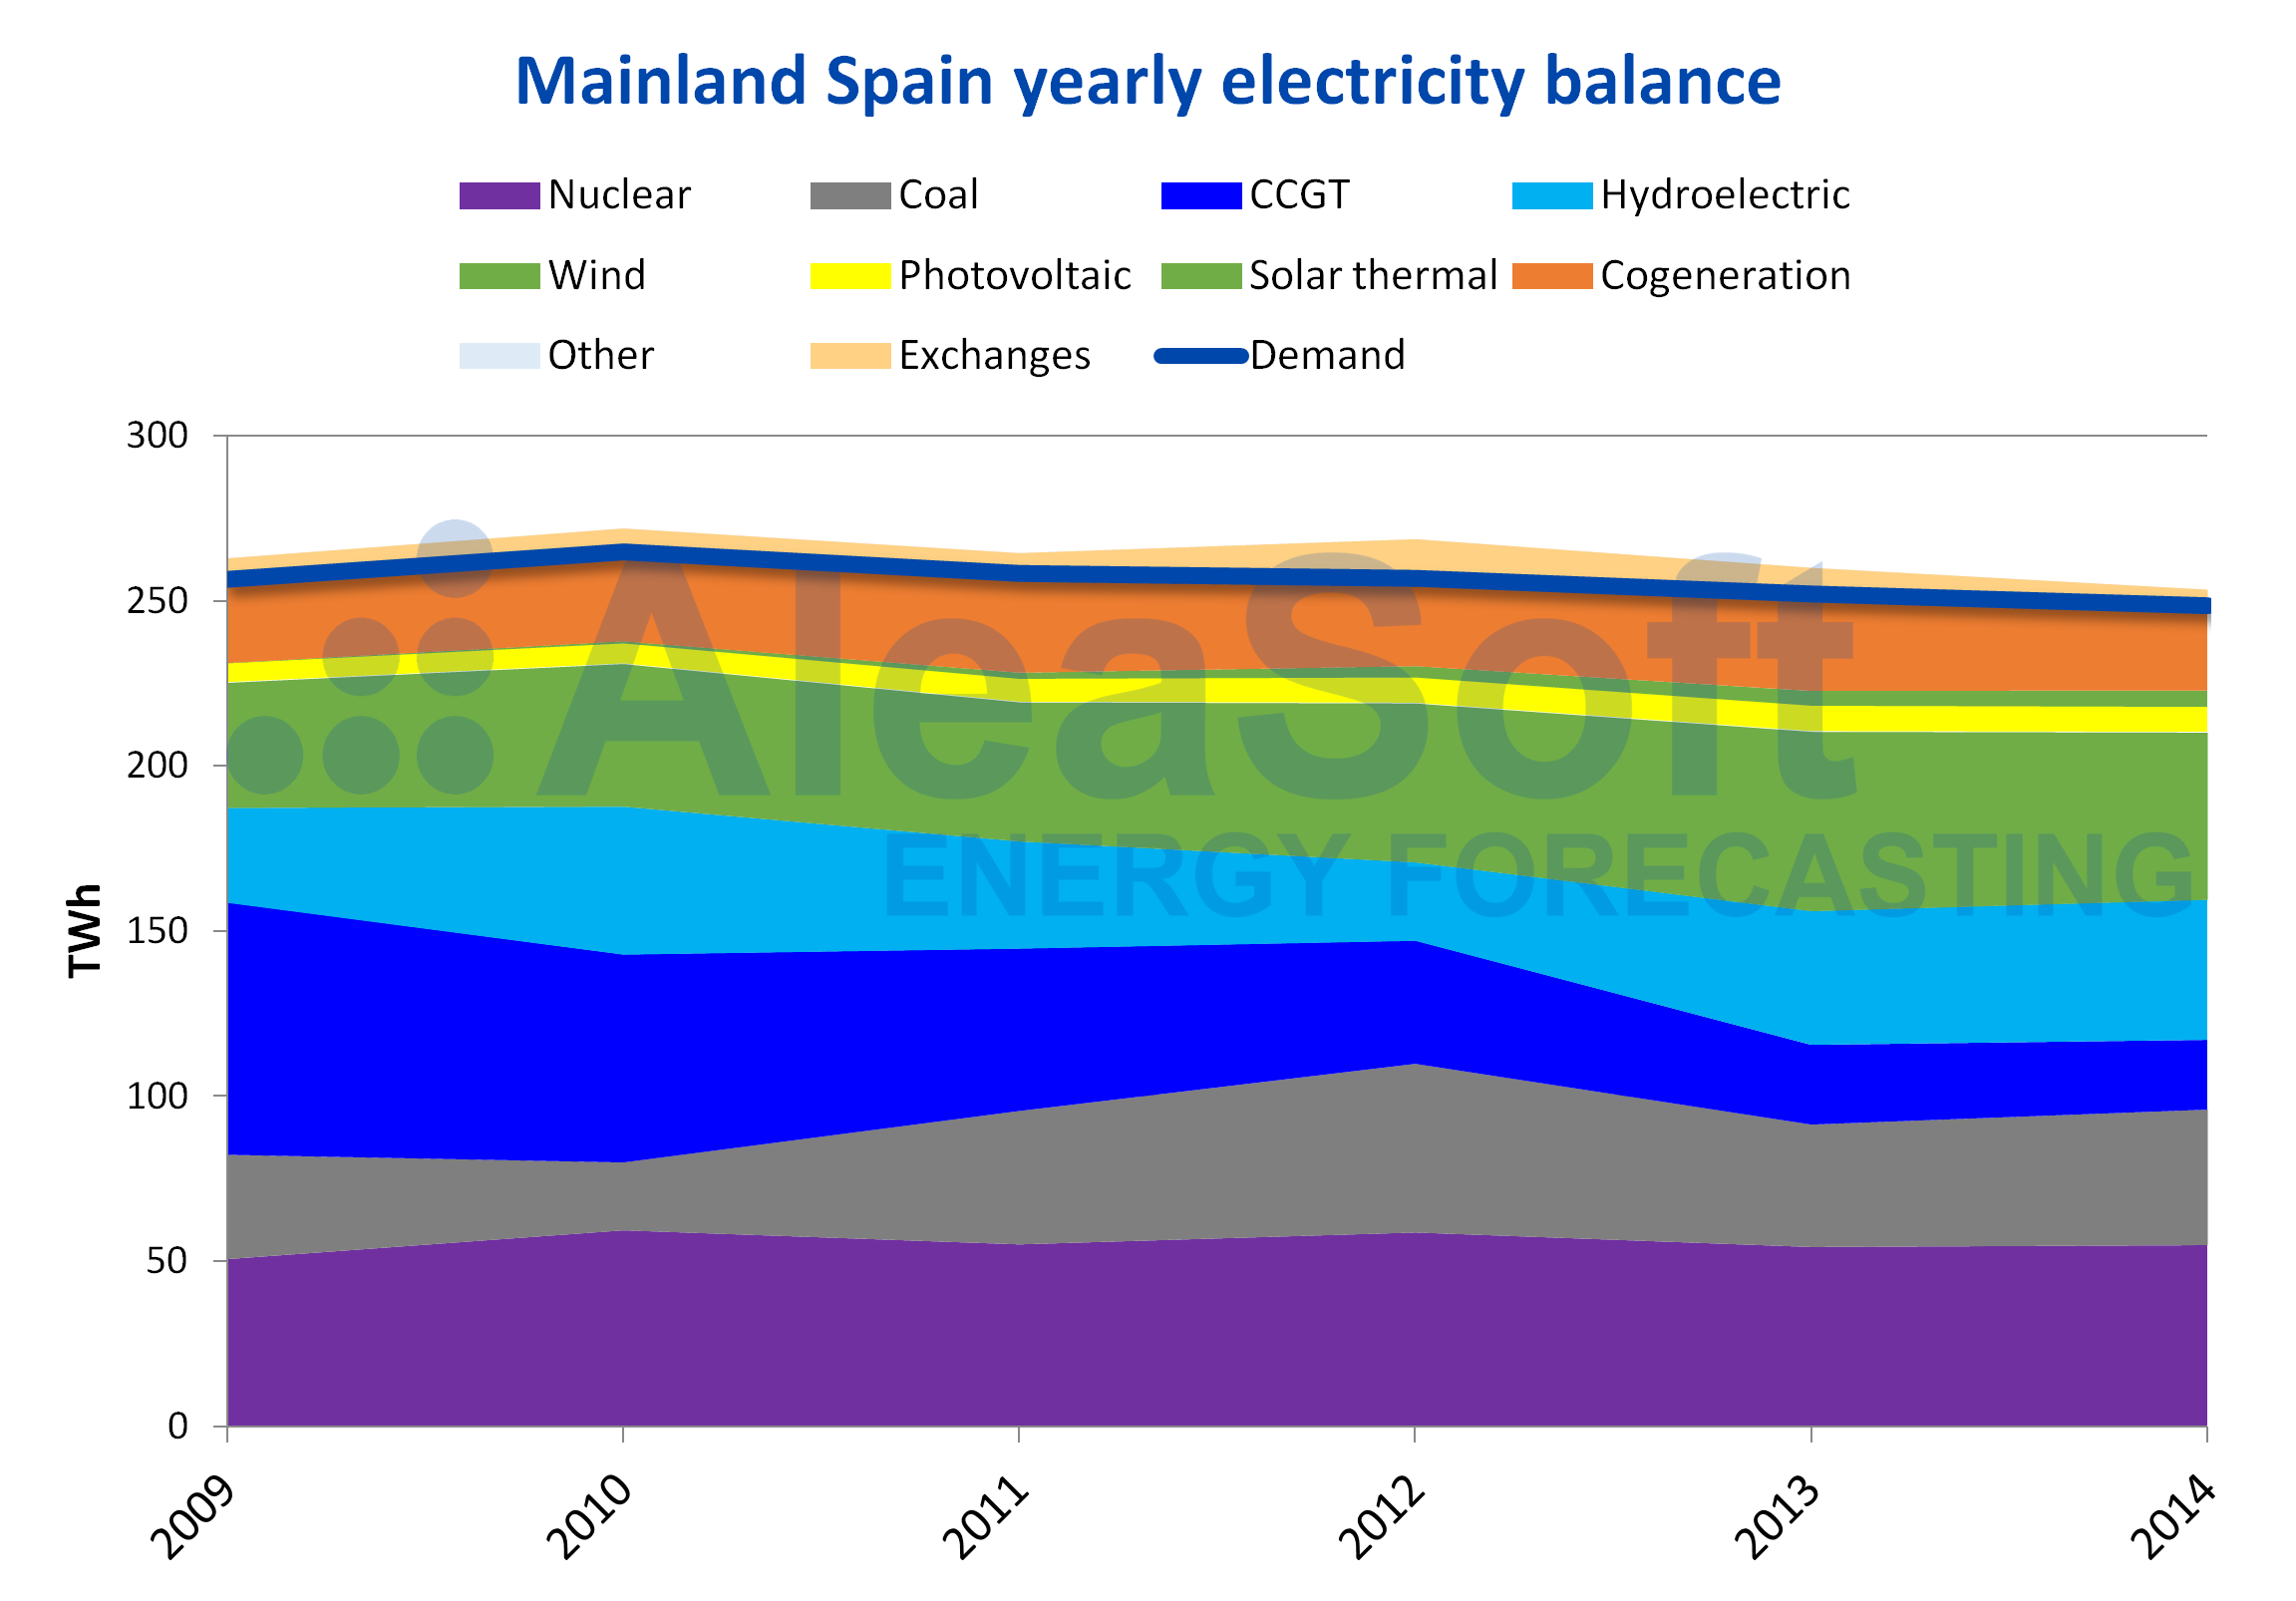 AleaSoft - Electricity balance Spain 2009-2014